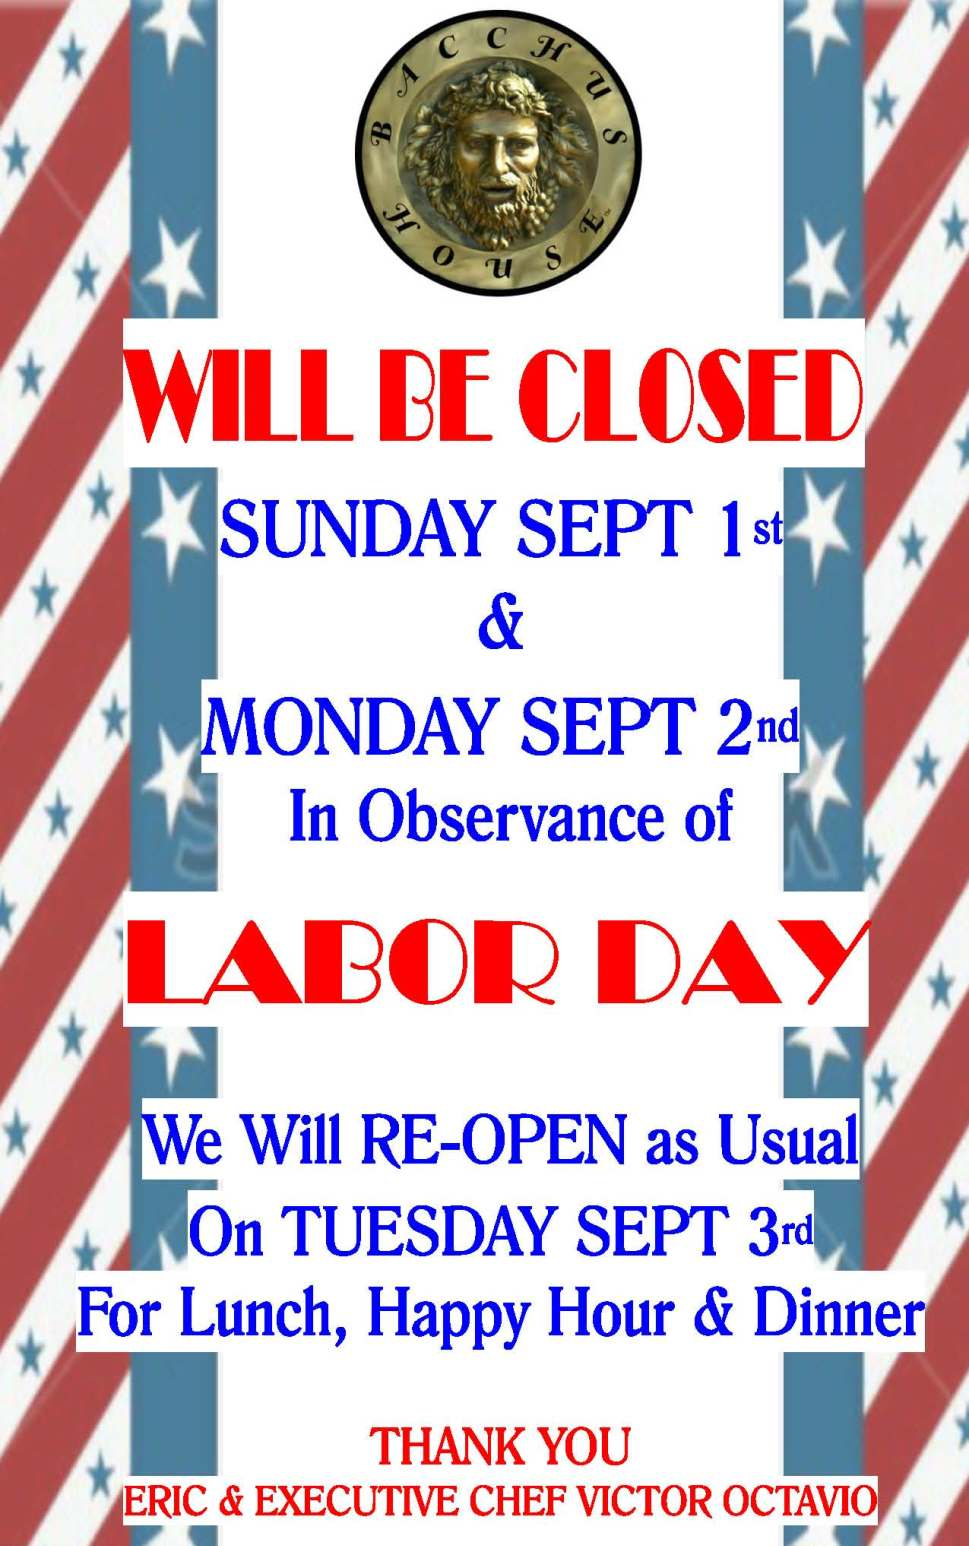 Labor Day Closed Flyer 2016